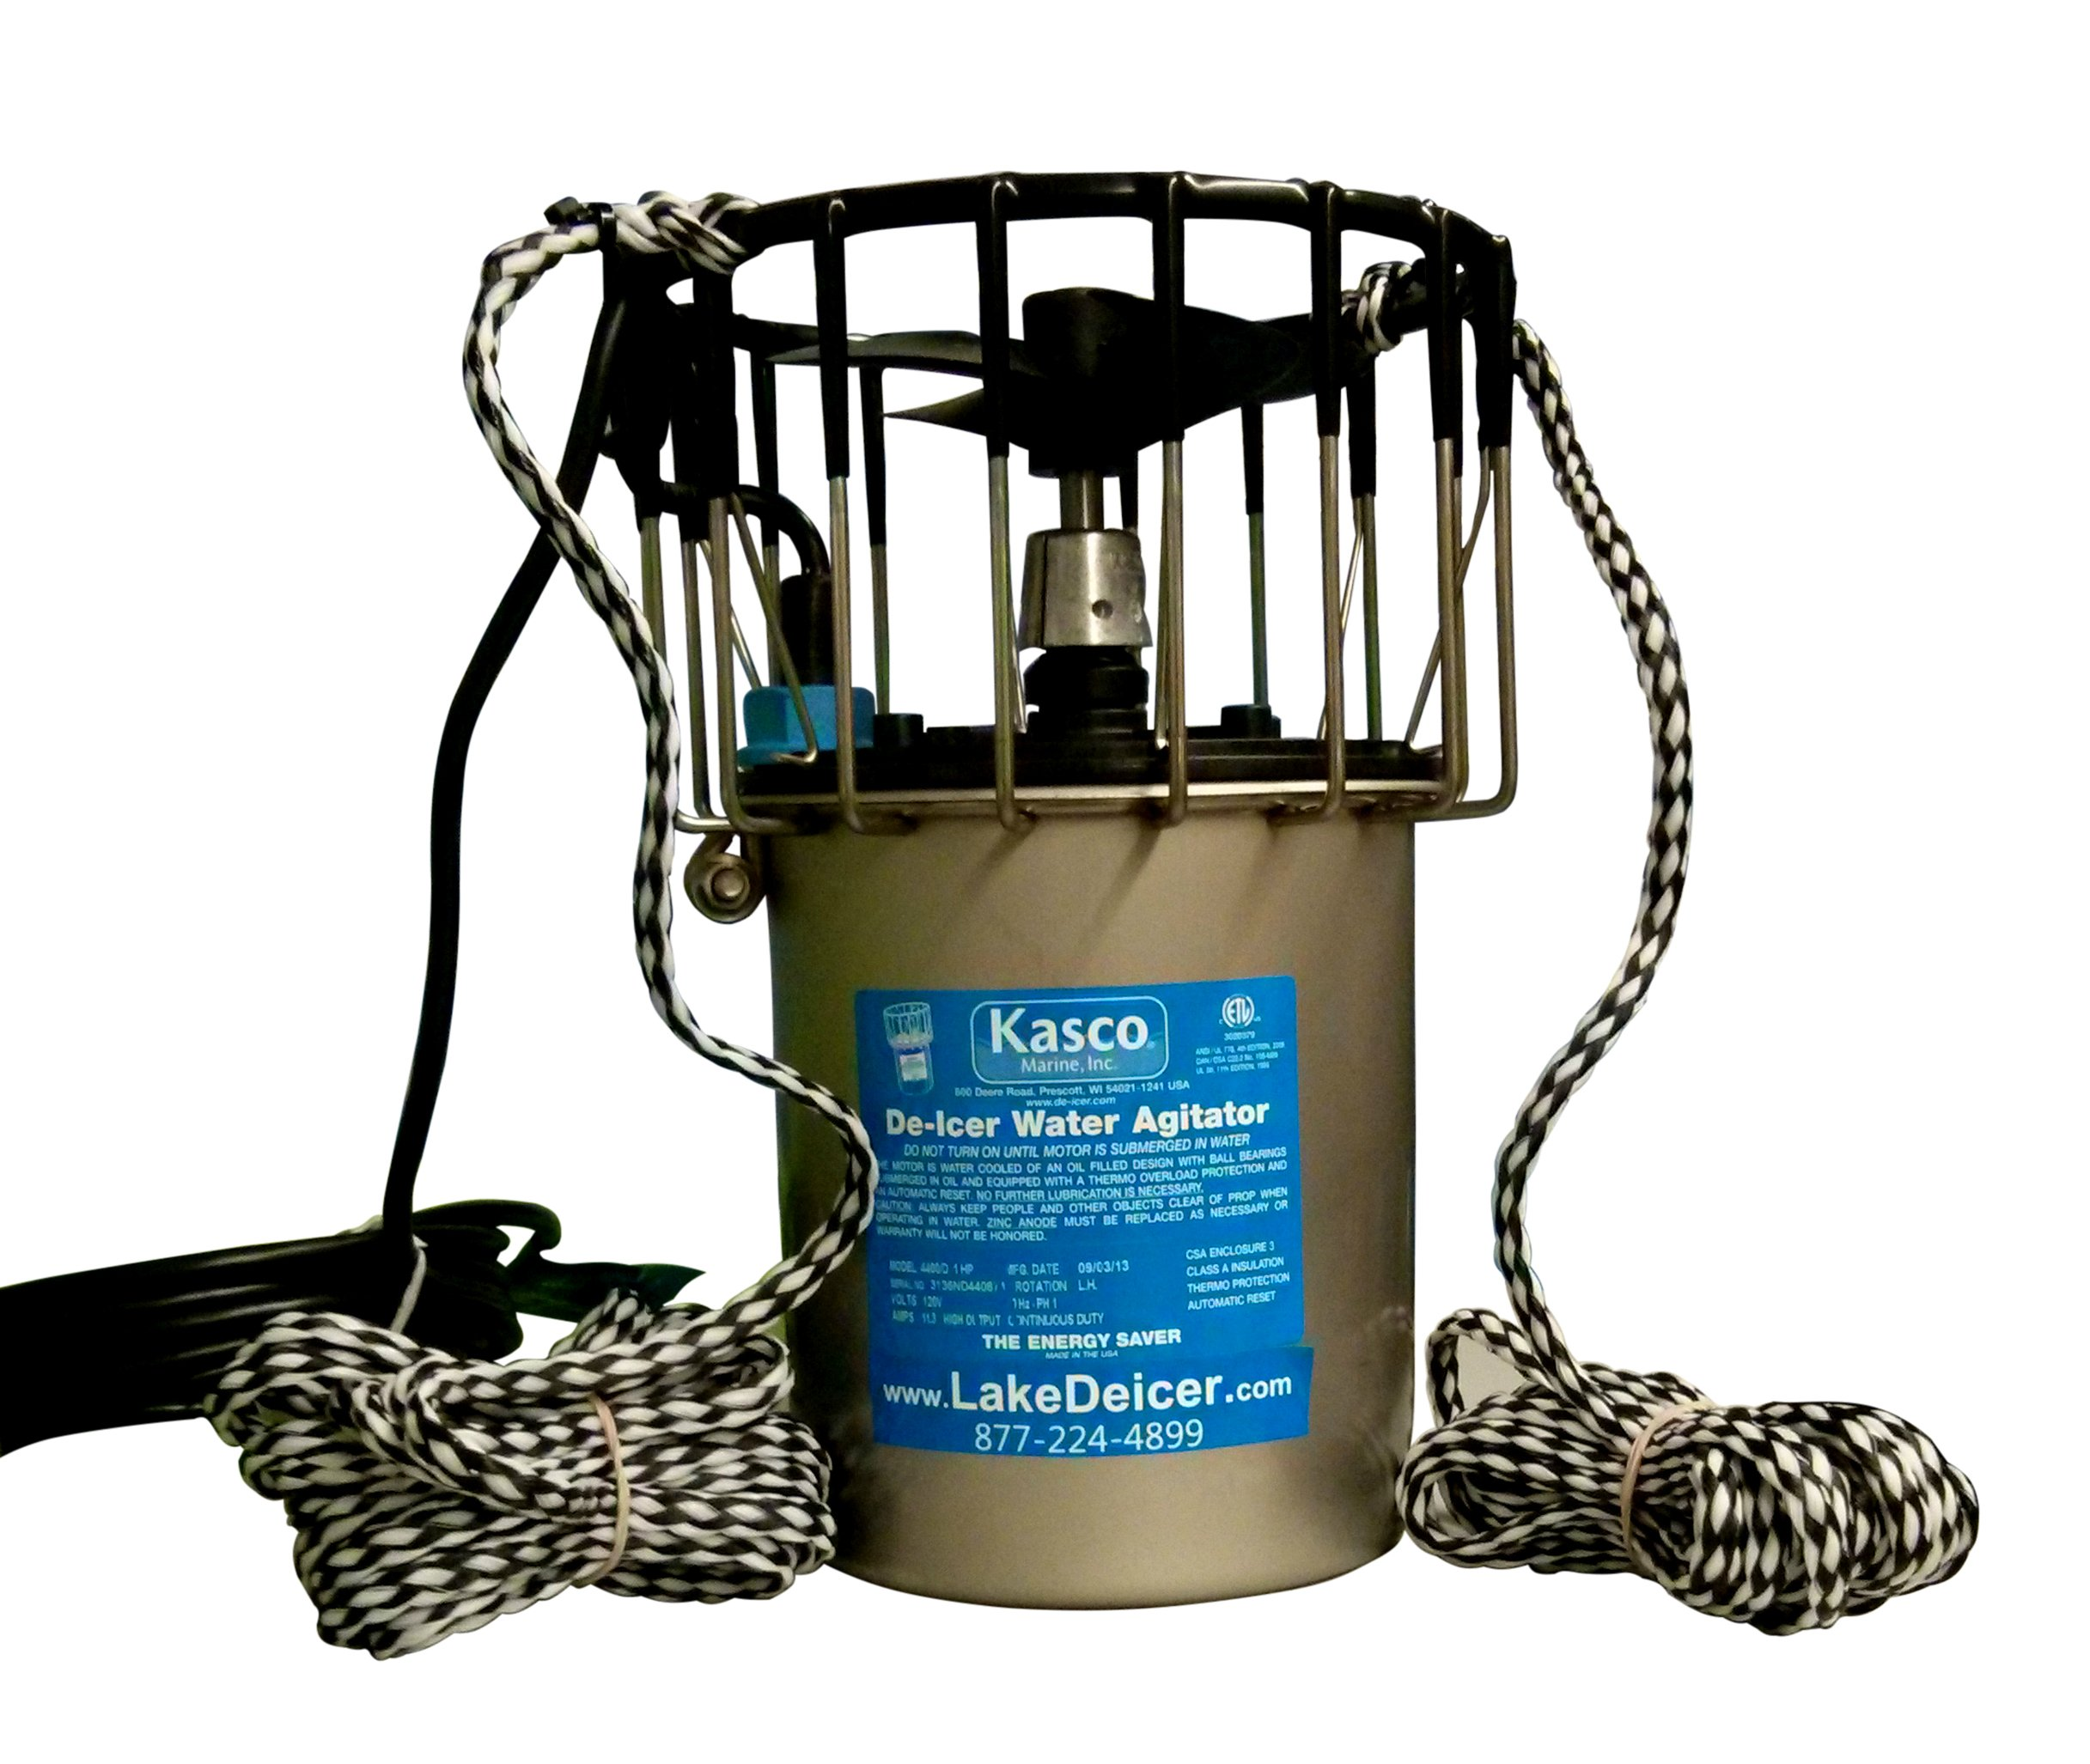 Deicer for Marinas, Lakes, and Ponds 3/4HP - 240v DEICER with 50ft cord - Kasco De Icer by Kasco